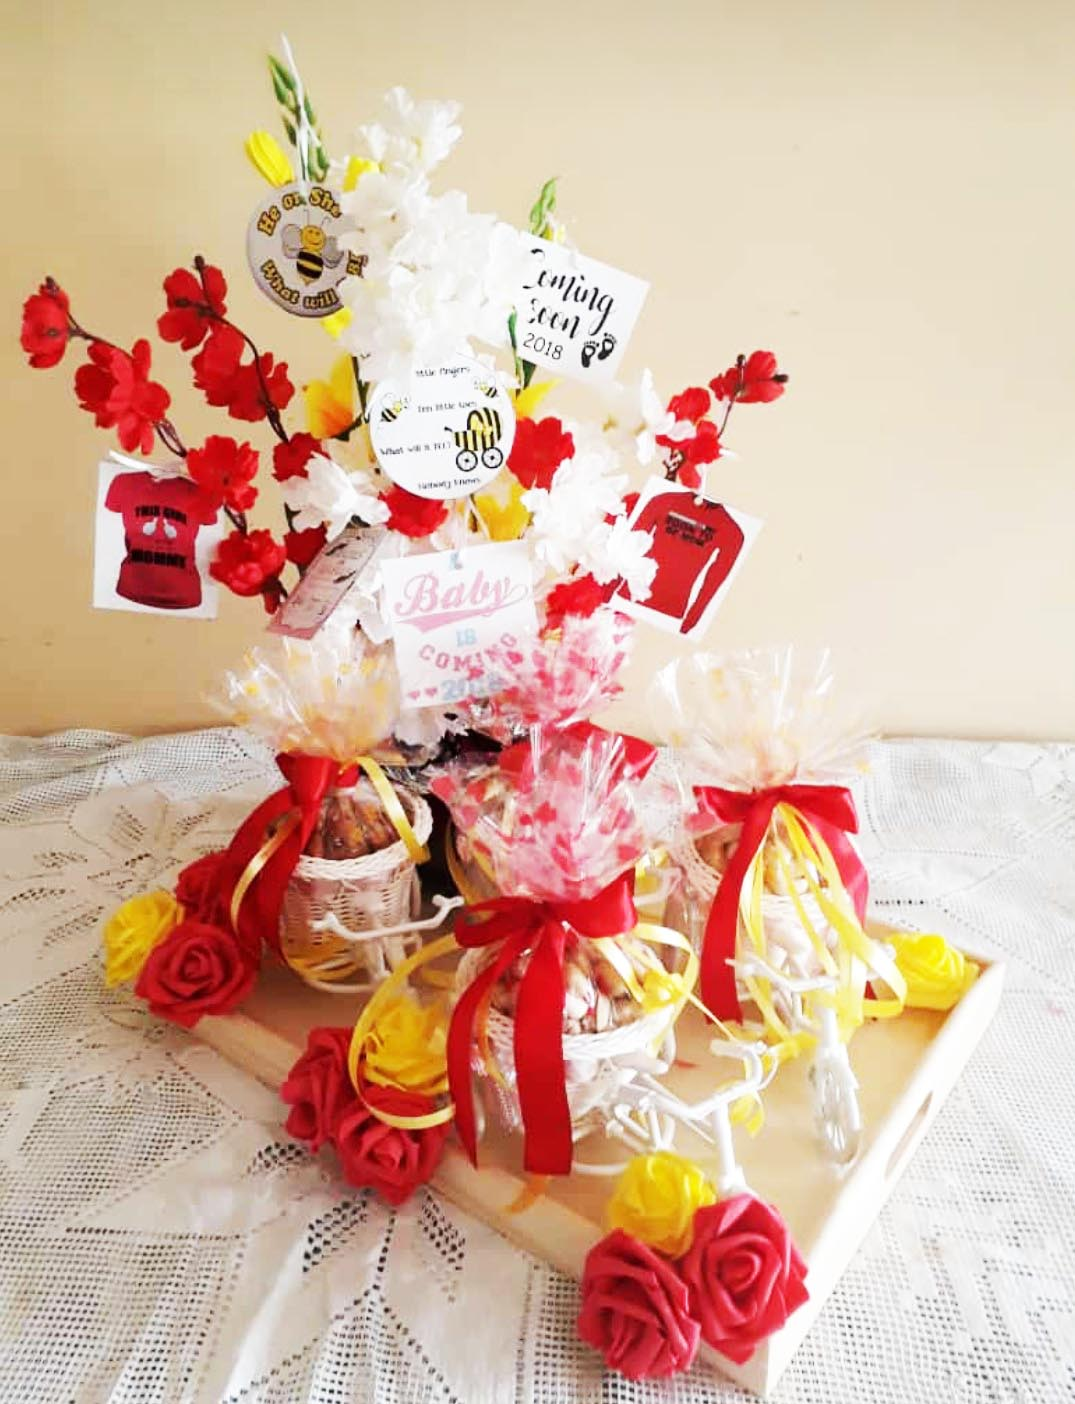 Birthdays & Baby Announcements Gifts